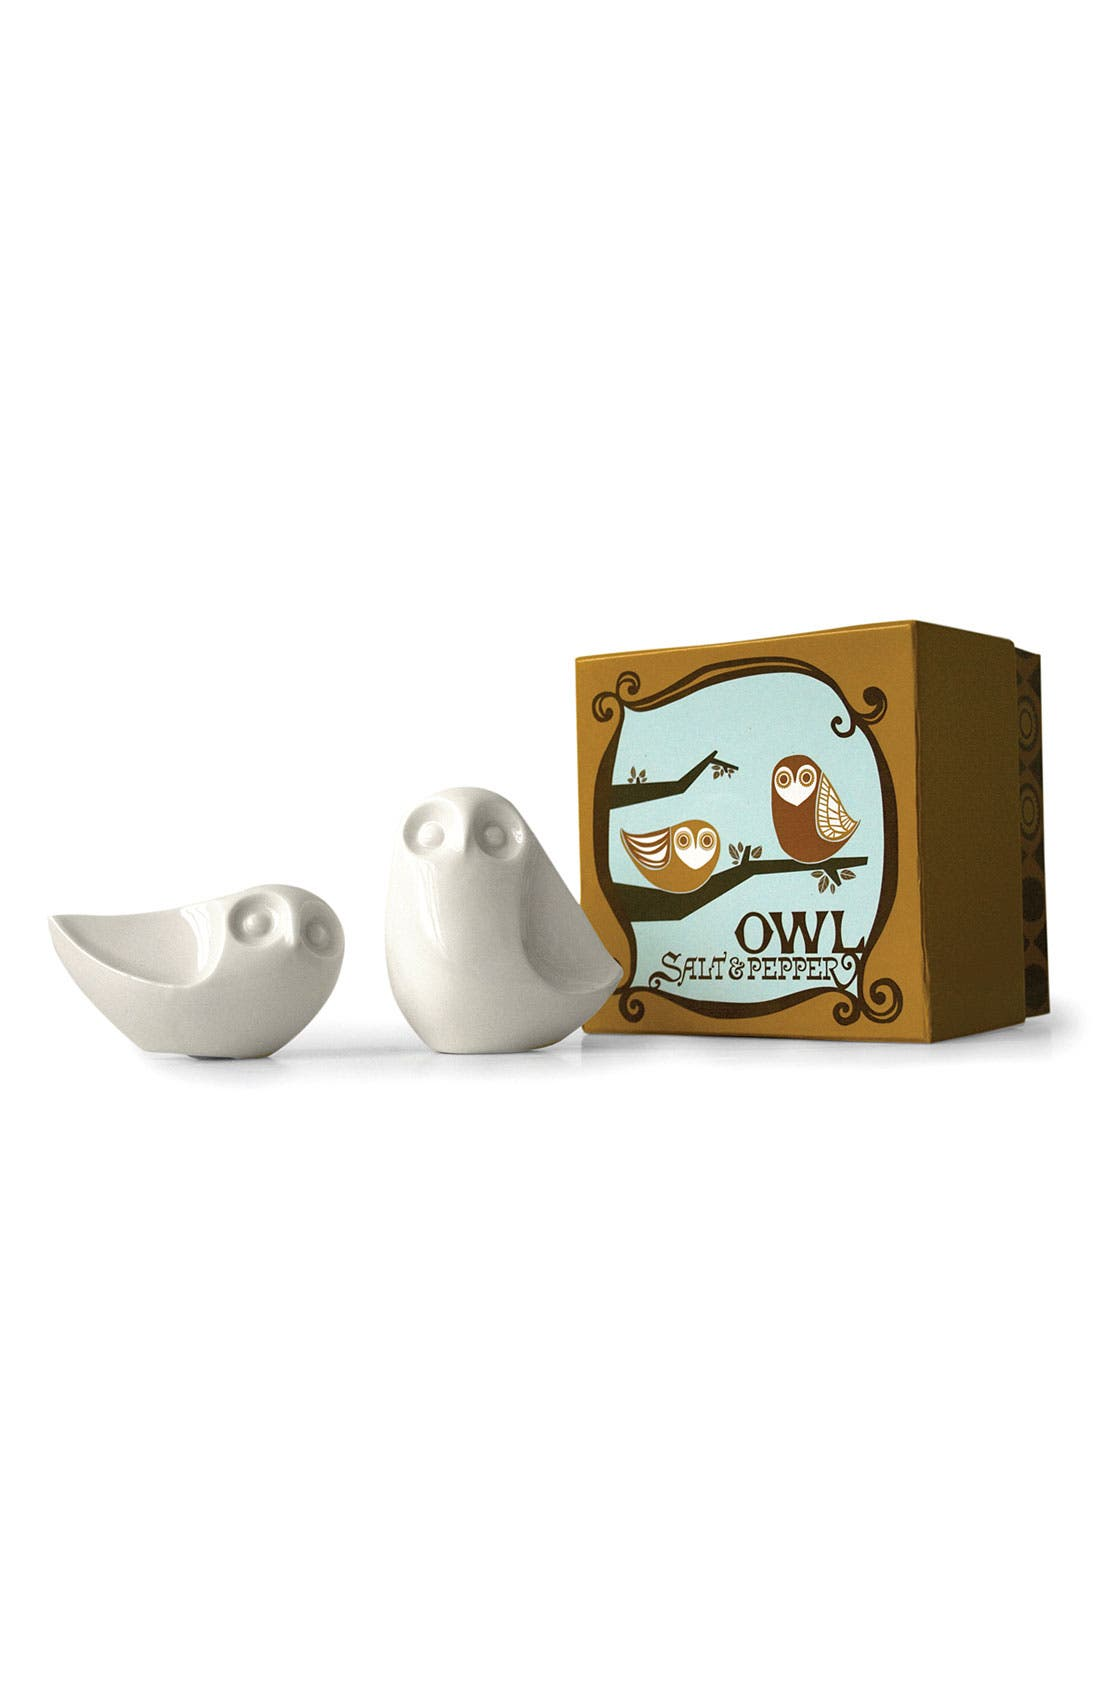 JONATHAN ADLER,                             Owl Salt & Pepper Shakers,                             Main thumbnail 1, color,                             000